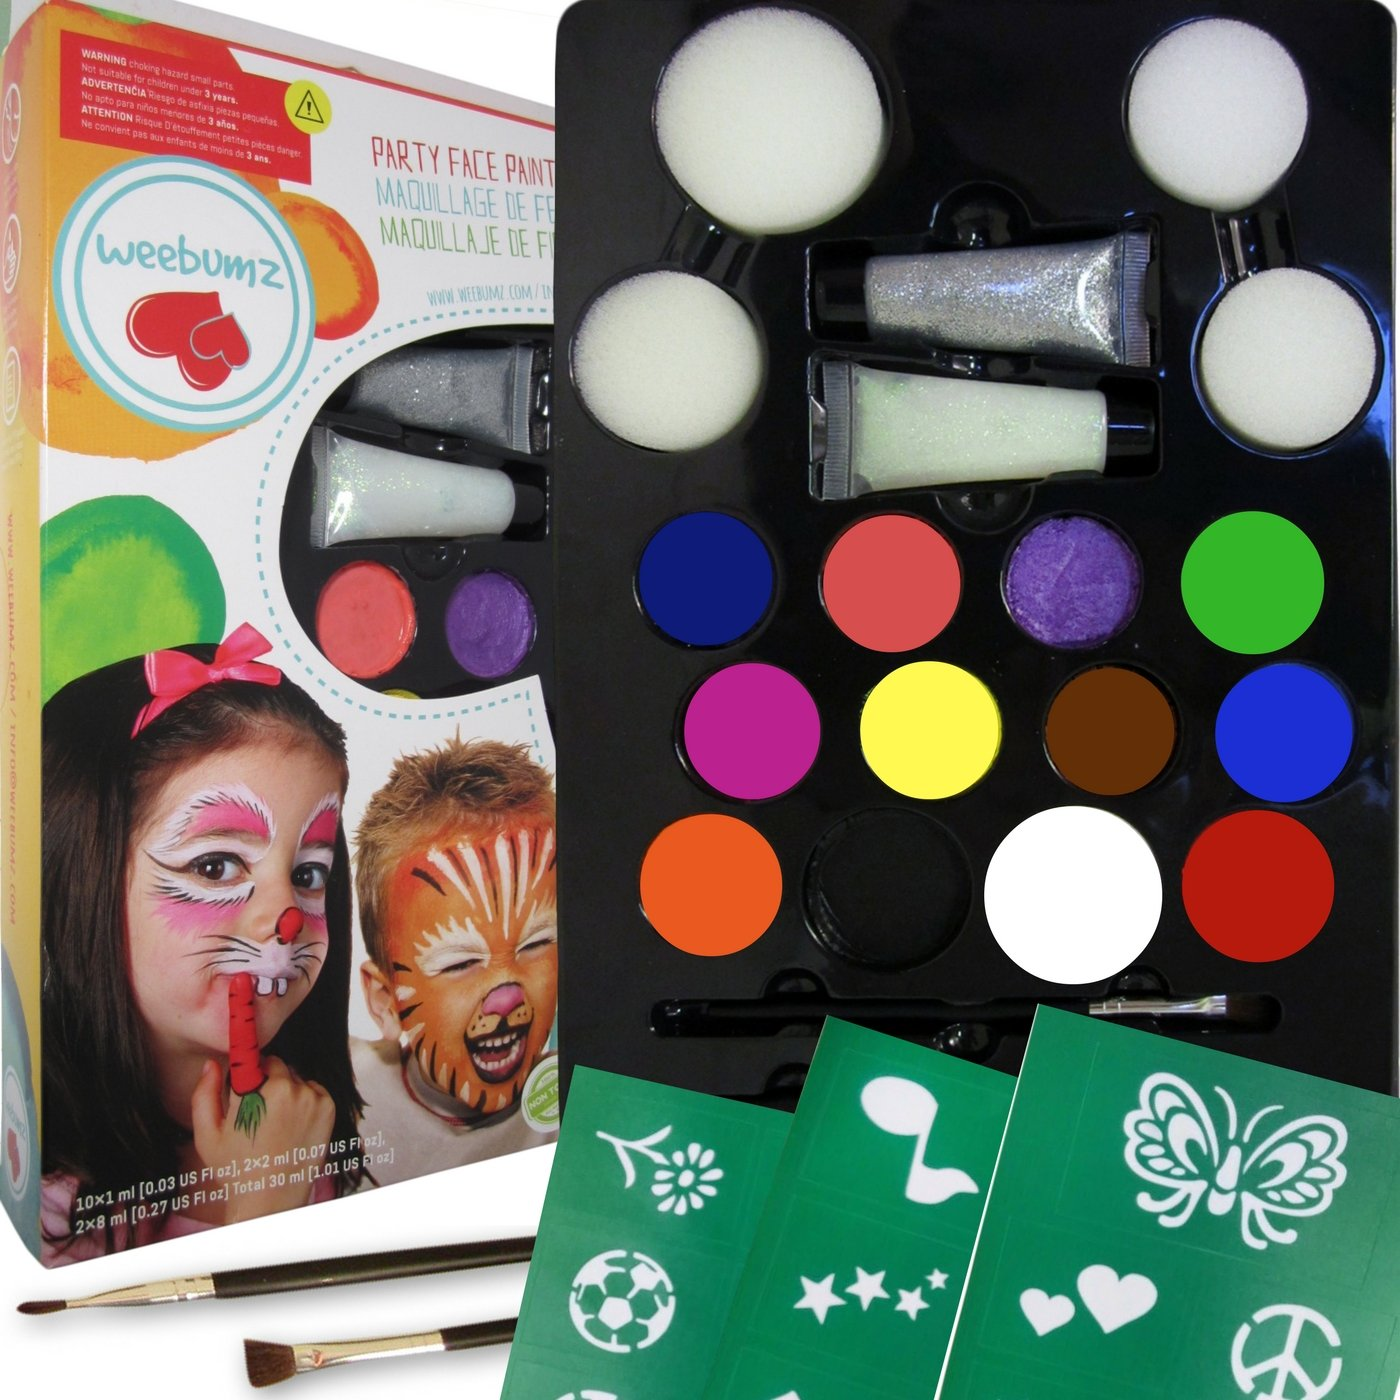 Amazon weebumz face painting top color party pack for kids amazon weebumz face painting top color party pack for kids quality body paint with stencils 4 sponges 2 glitter gels 2 brushes fandeluxe Ebook collections